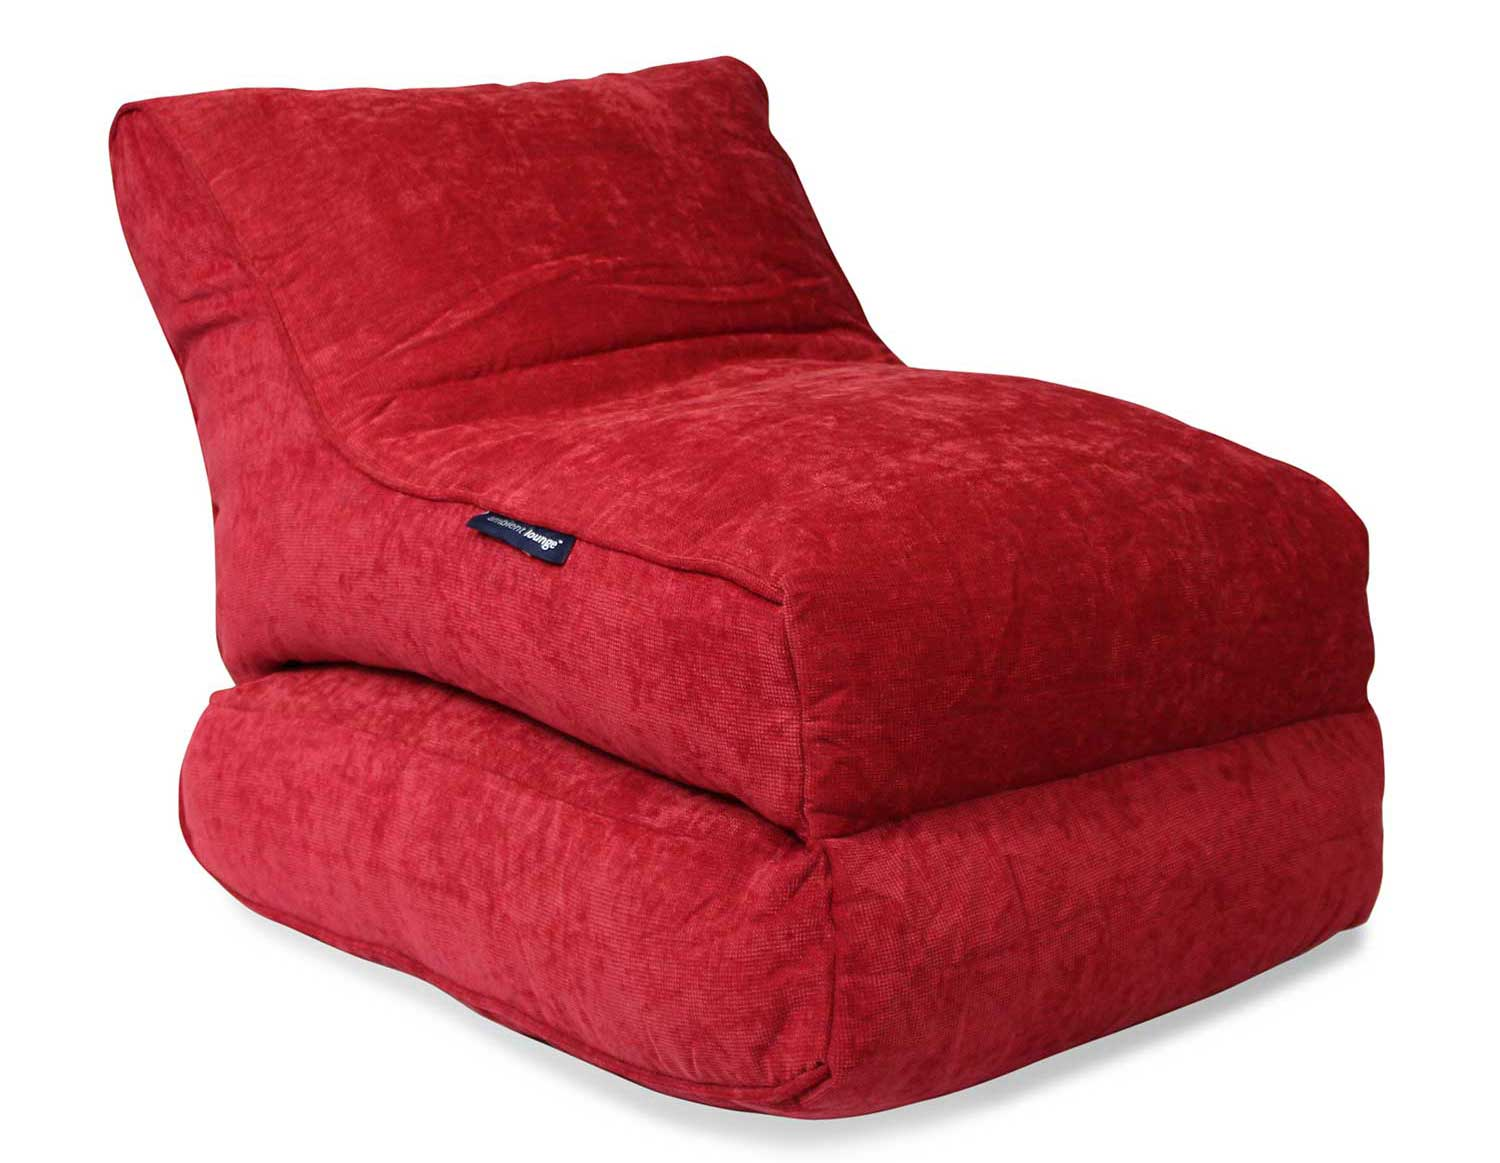 Conversion Lounger Wildberry Deluxe